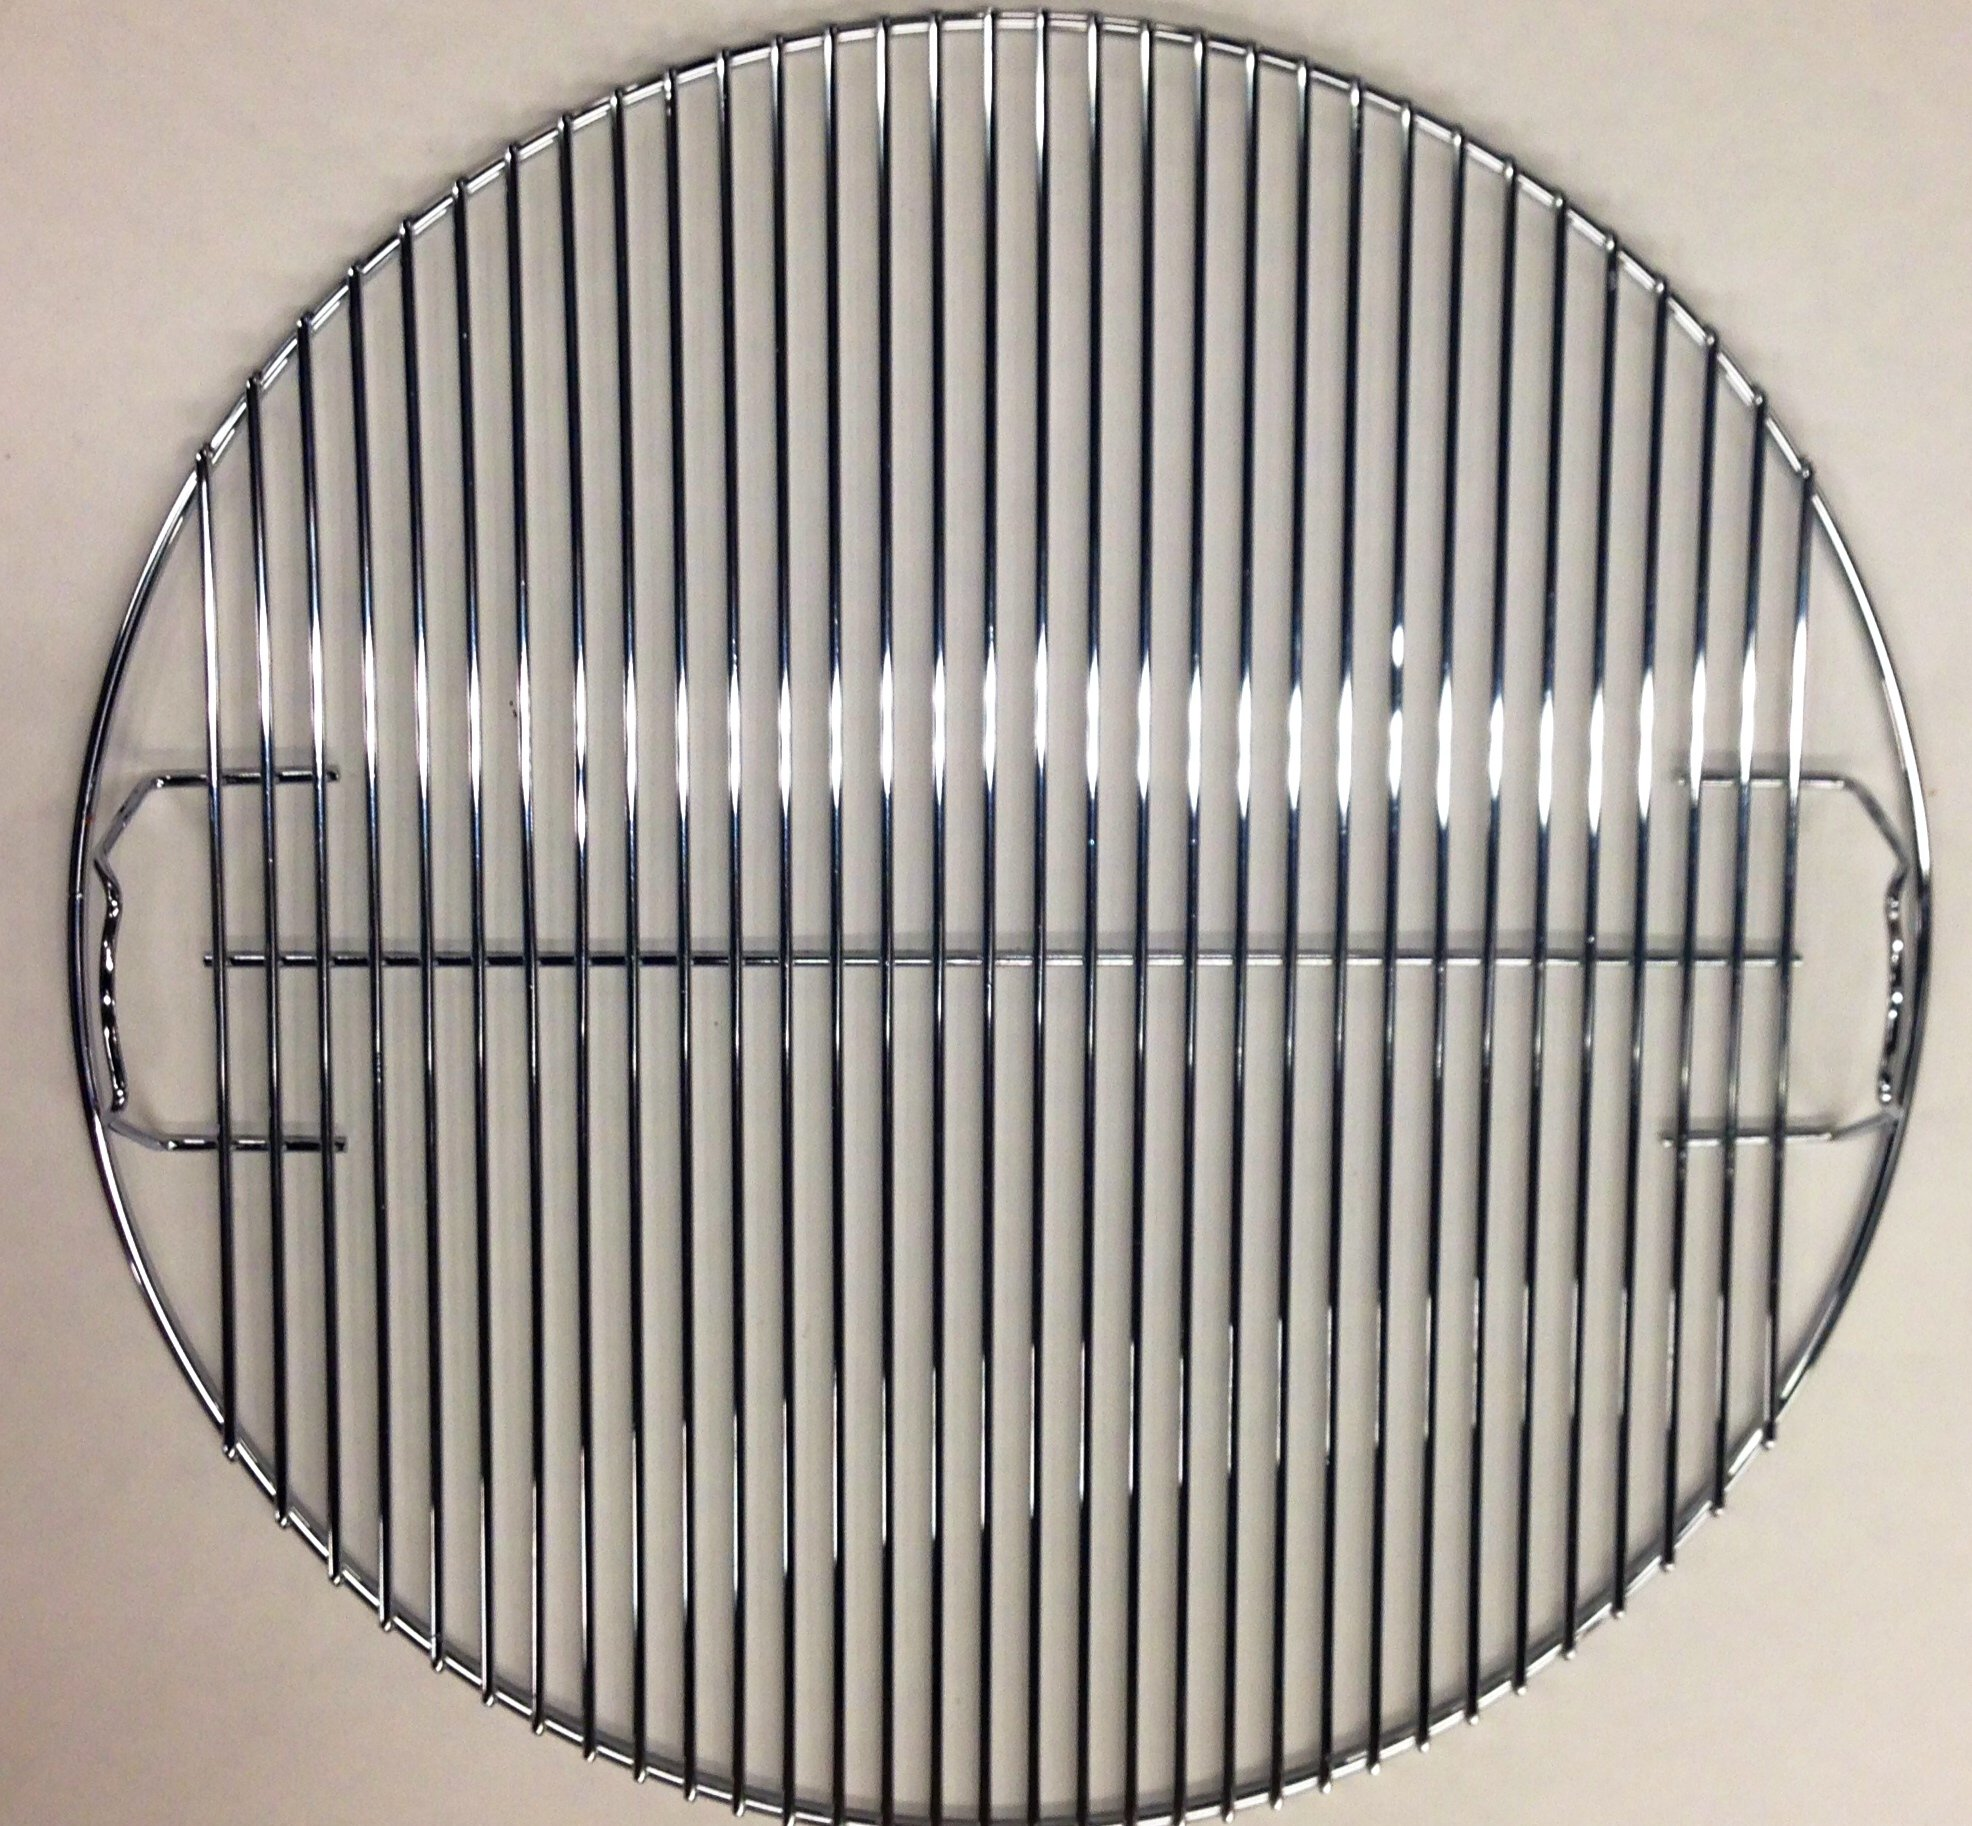 Weber # 85041 22.5'' Lower Cooking Grate